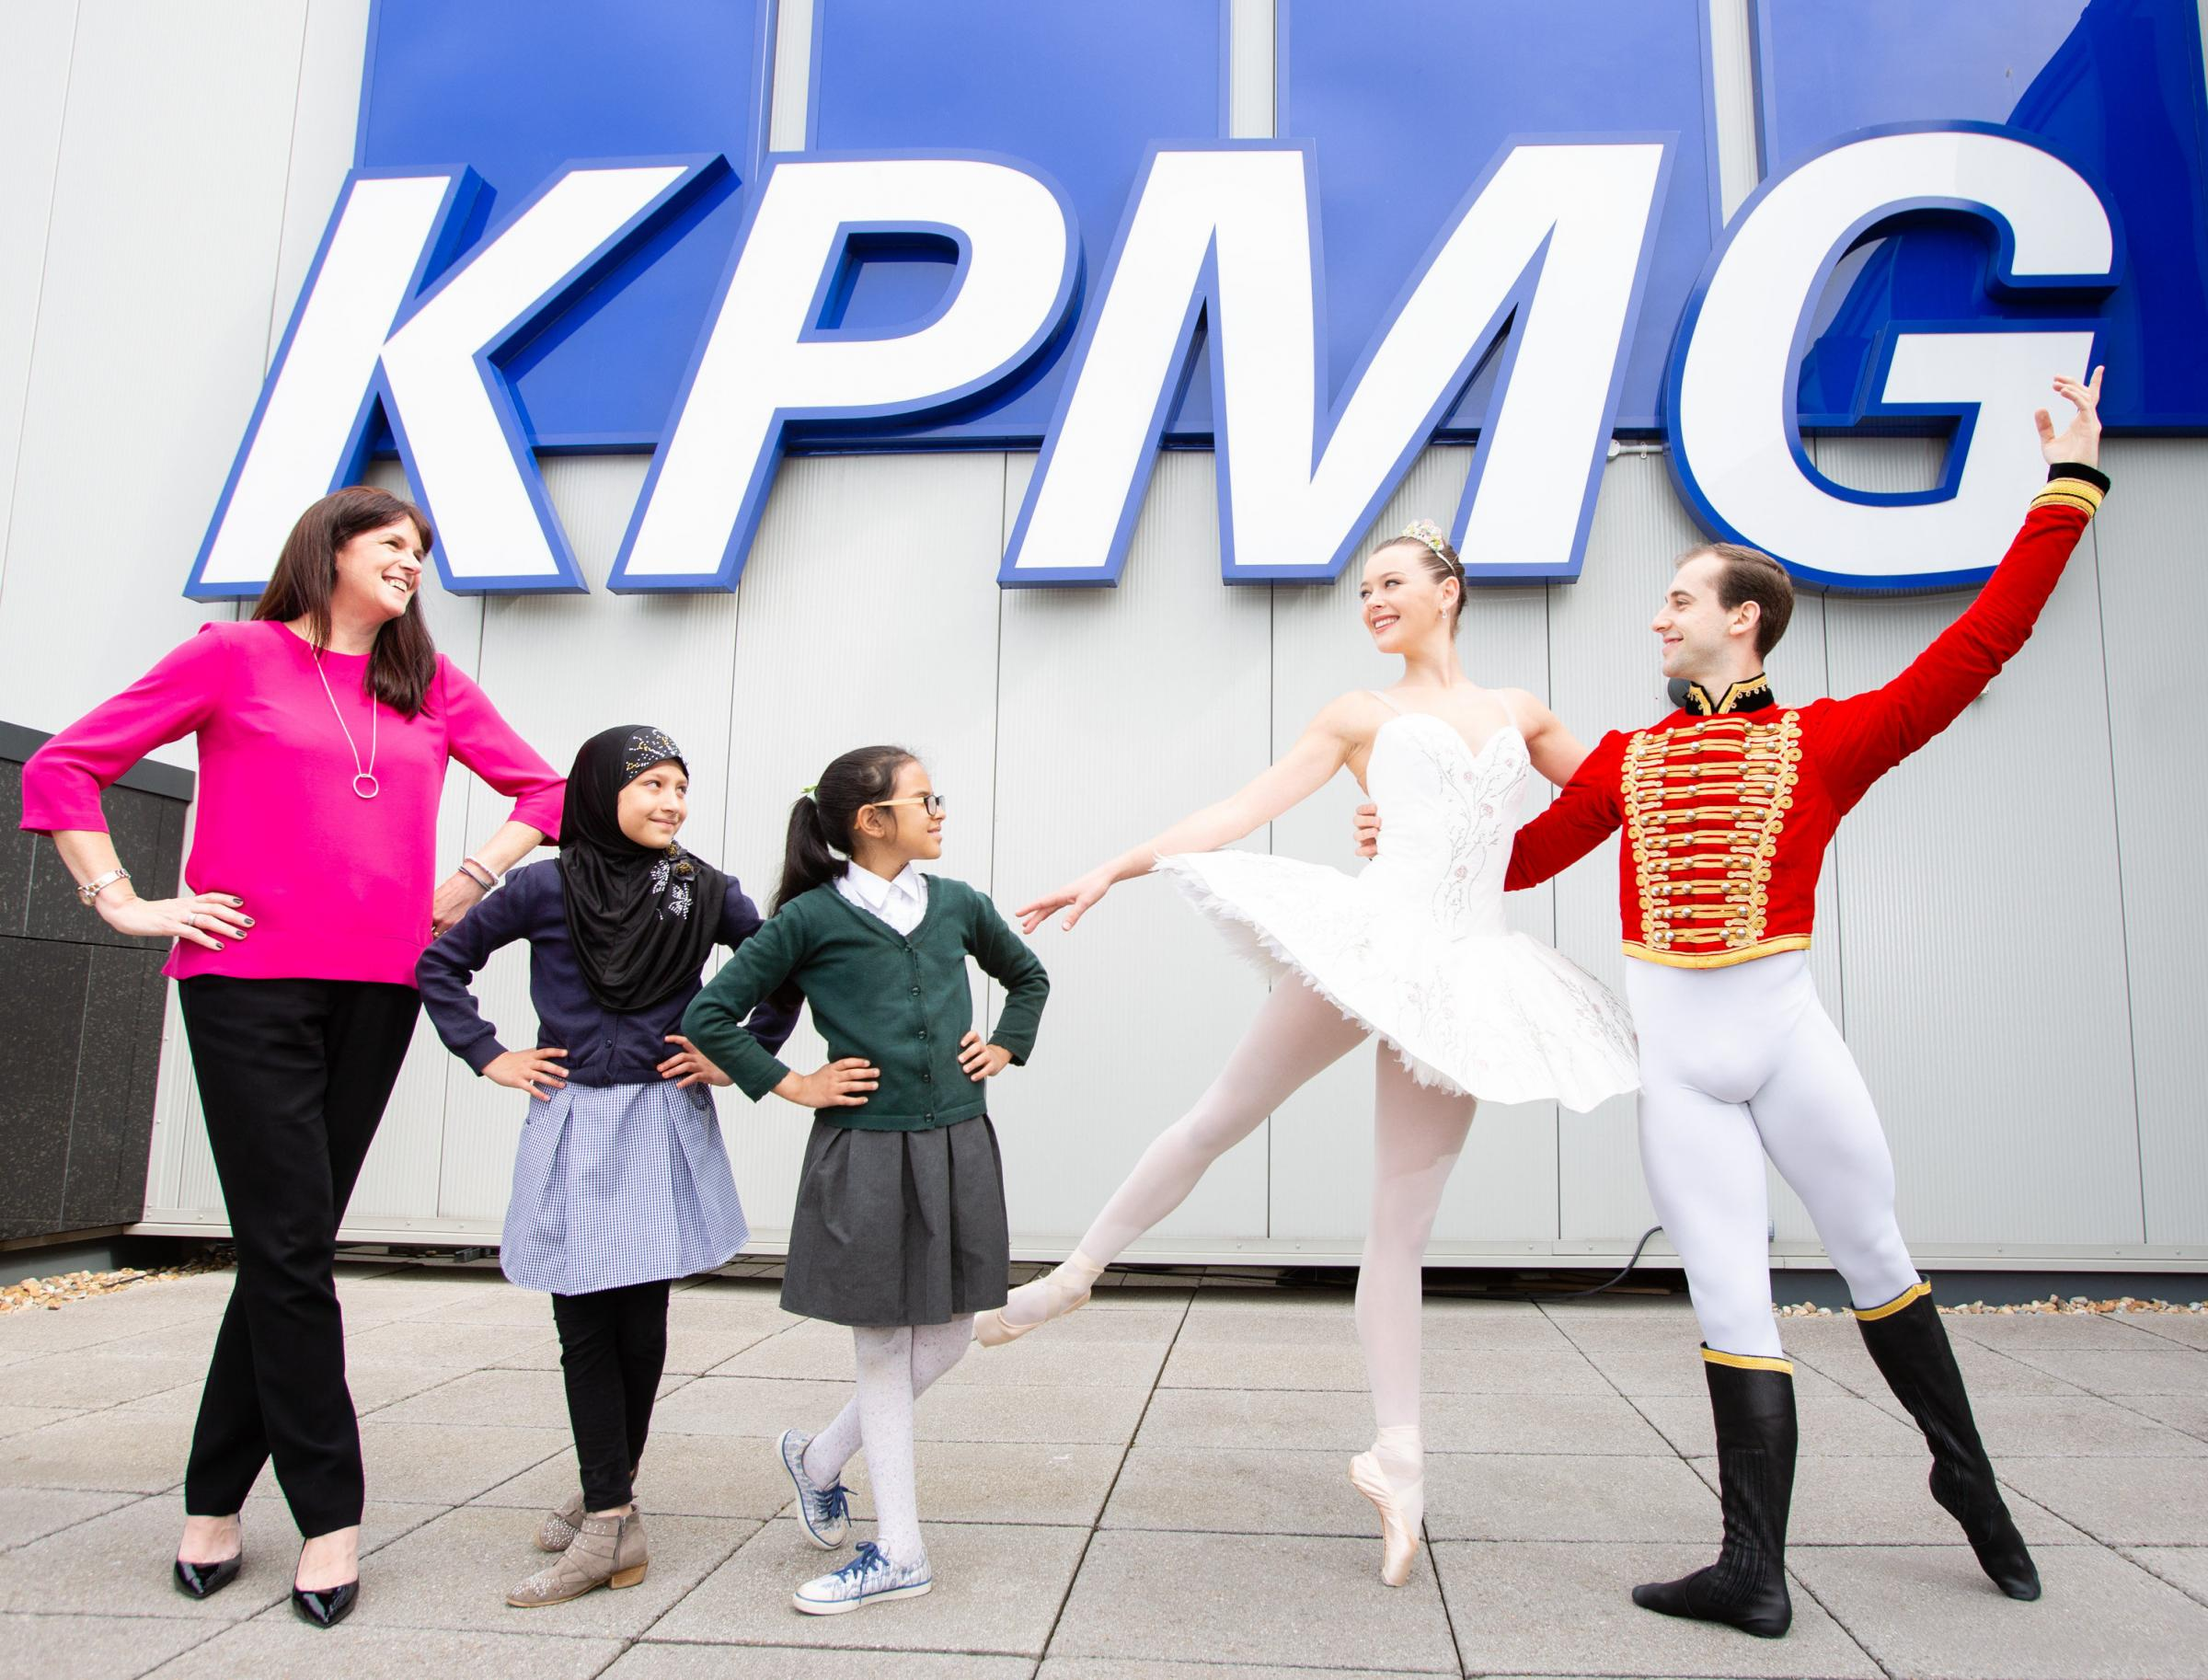 From left to right: Catherine Burnet of KPMG, pupils from Cuthbertson Primary School and Scottish Ballet dancers Mia Thompson and Bruno Micchiardi